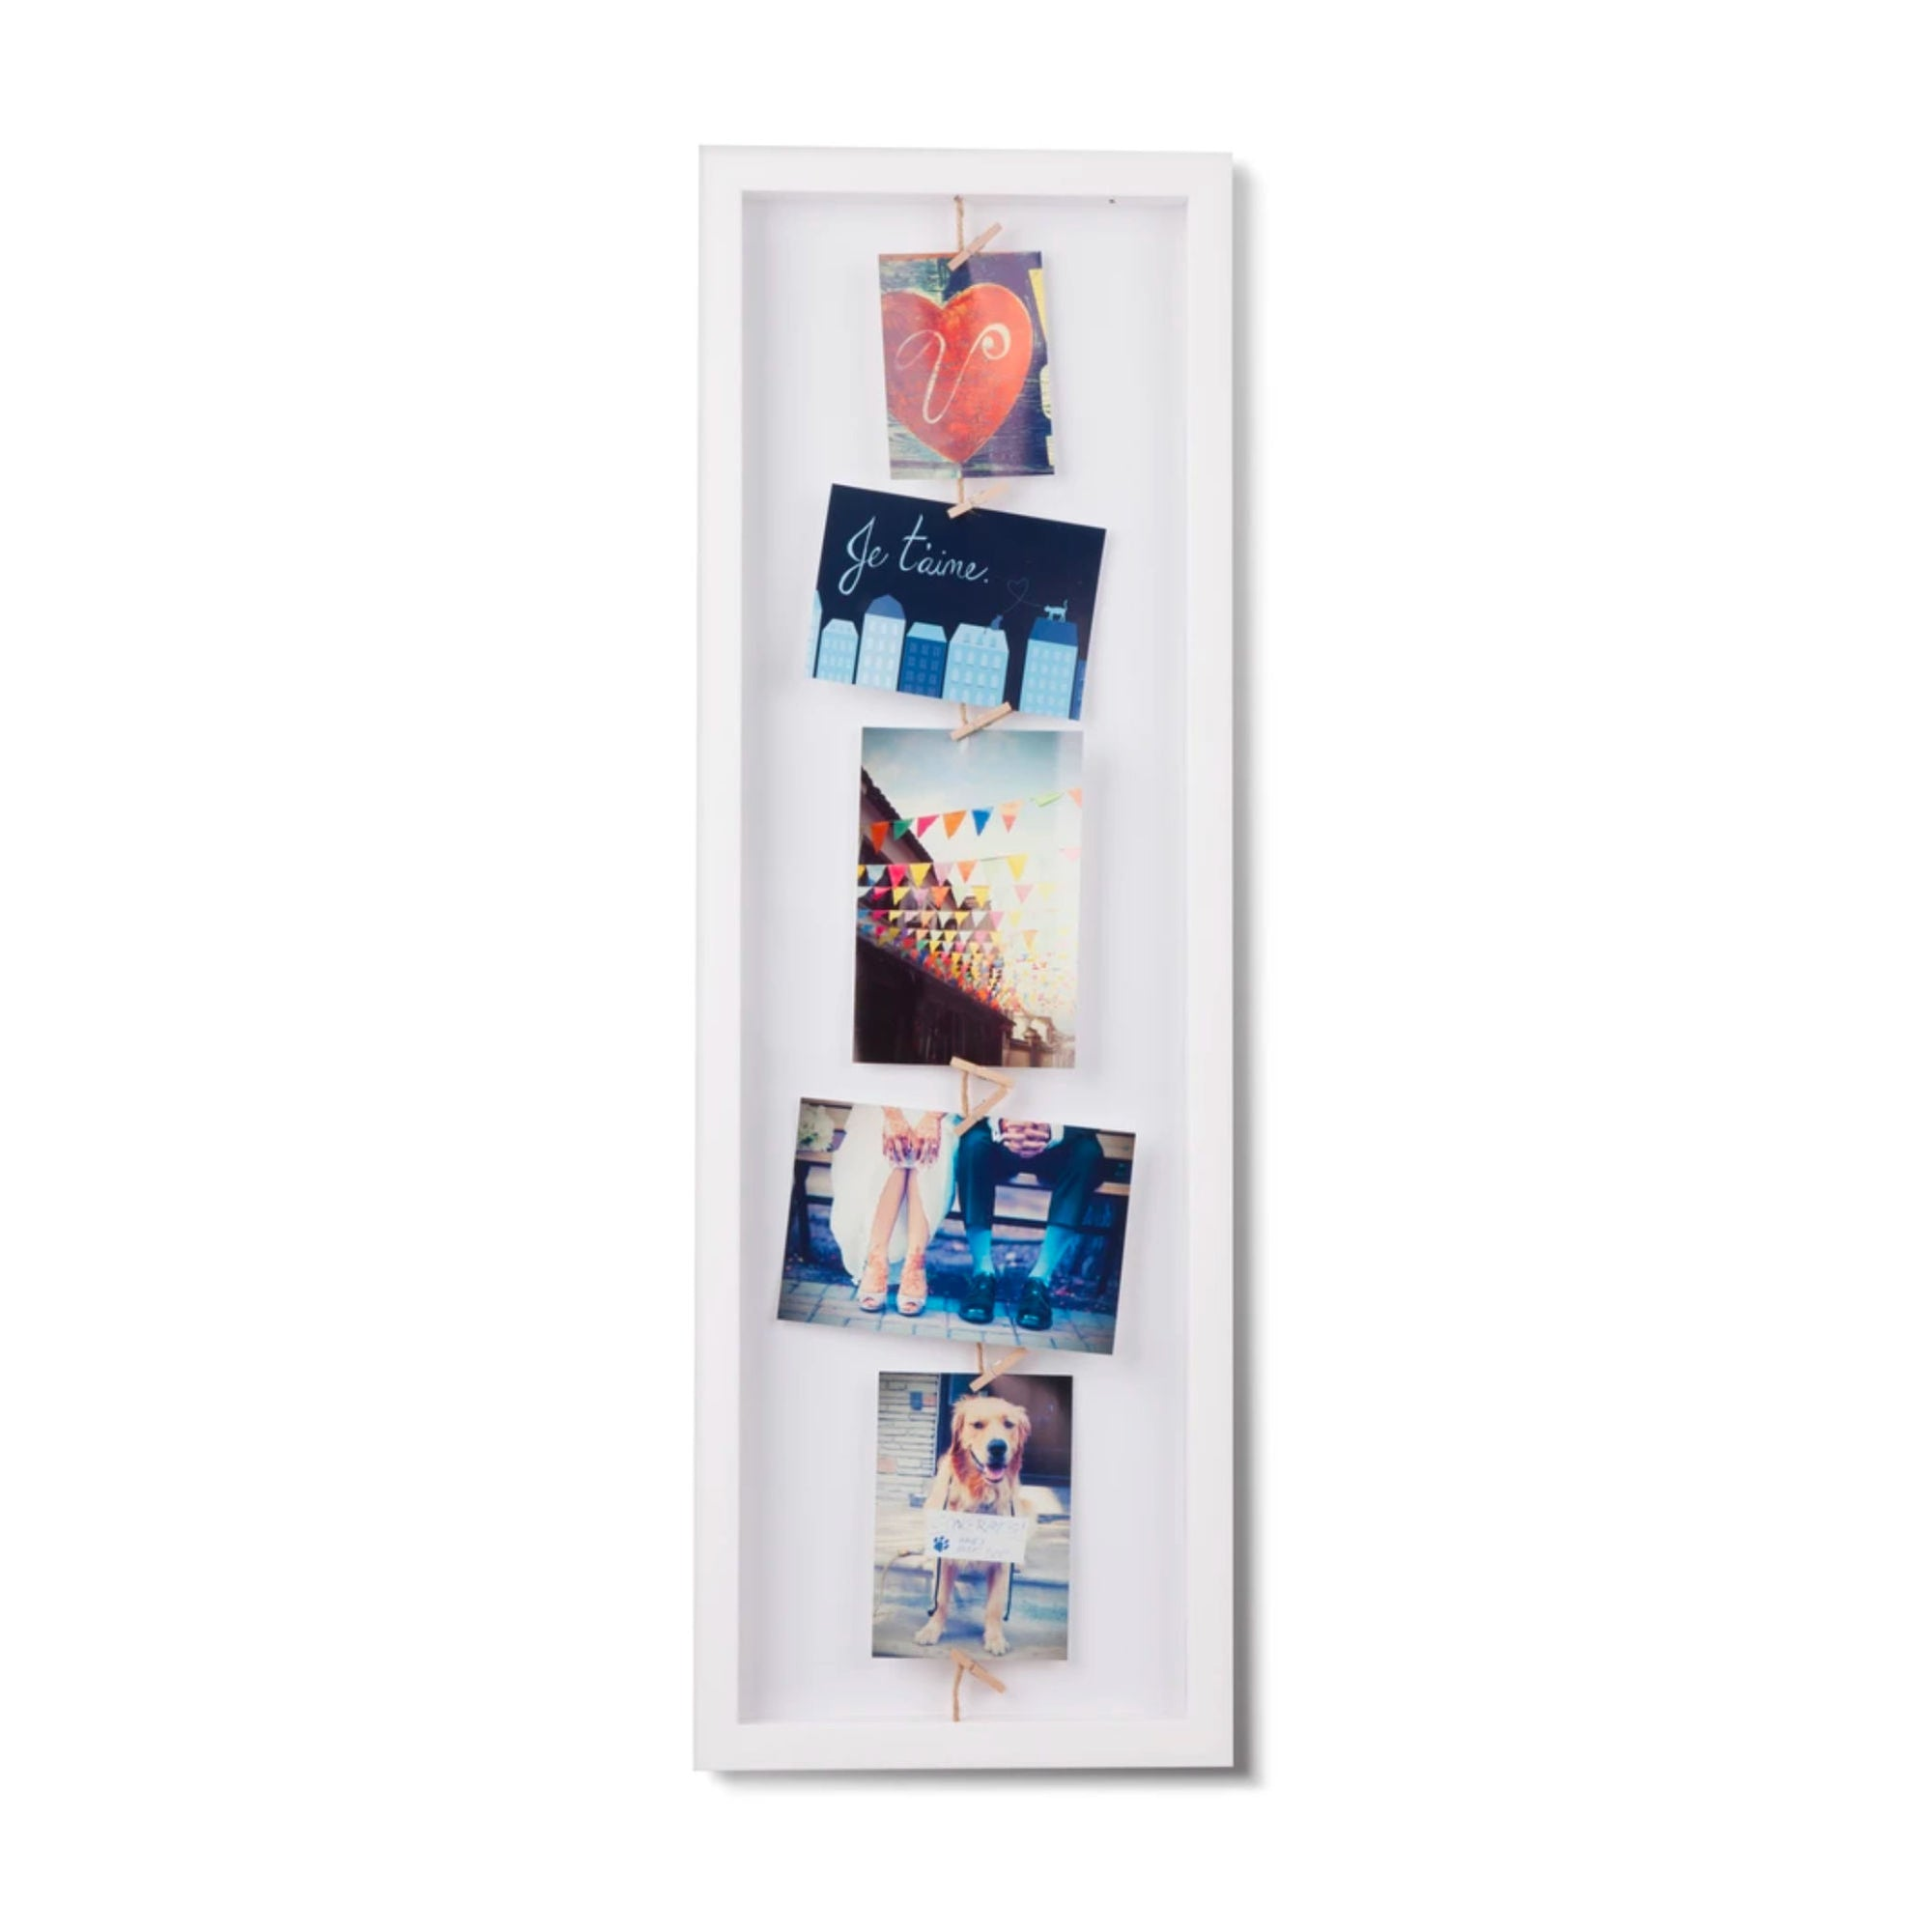 Umbra Clothesline Flip photo frame, white